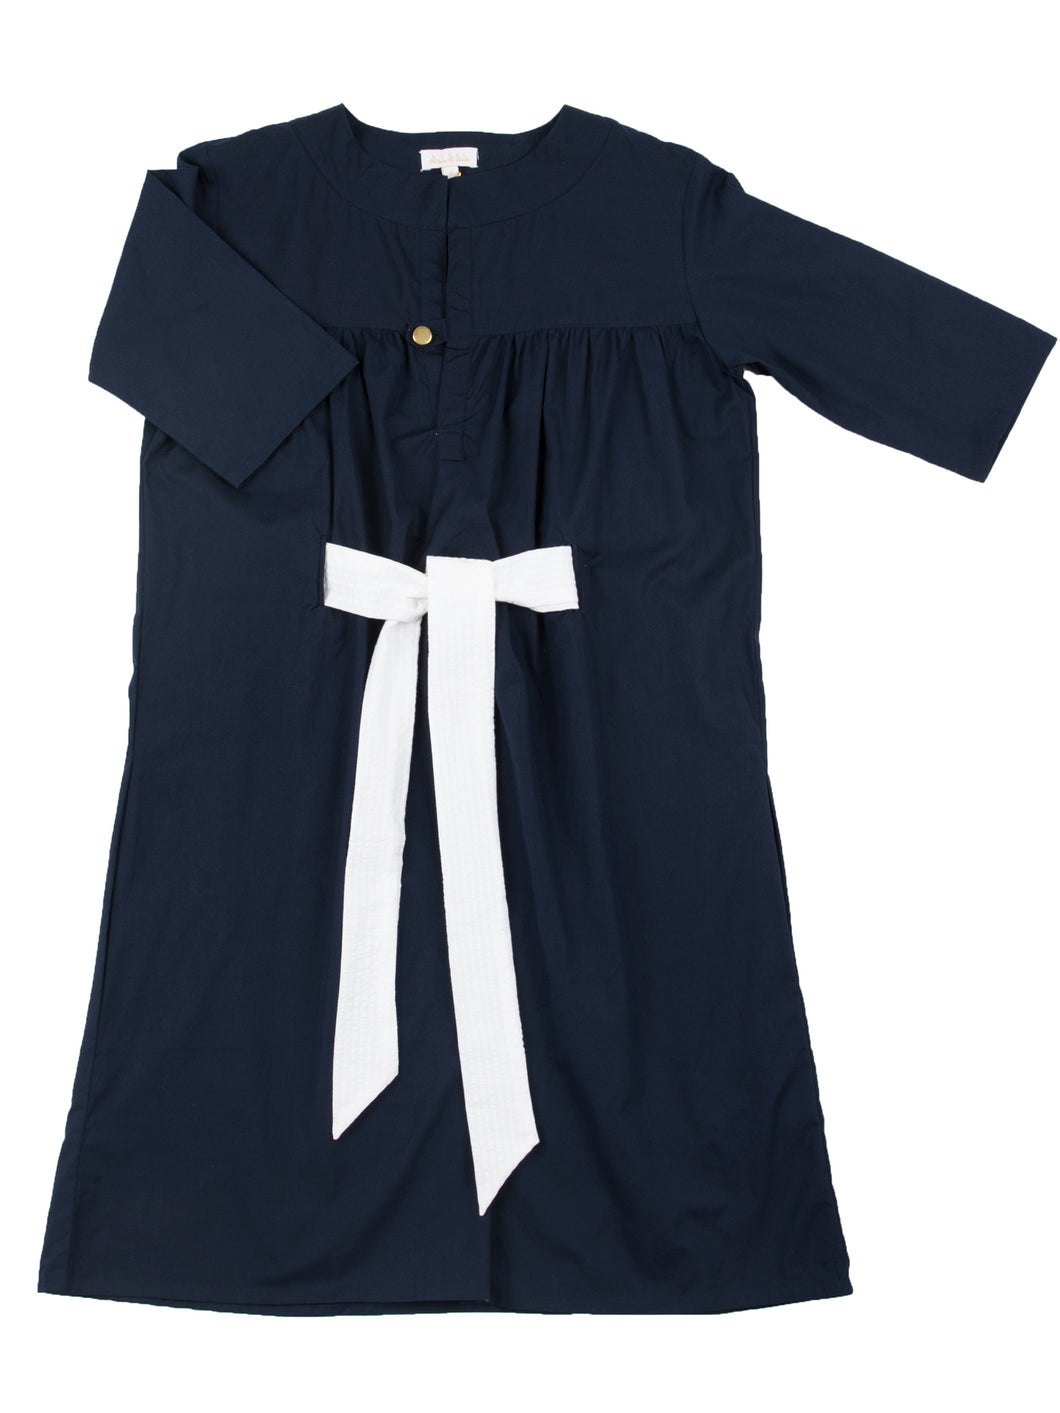 alex%20plain%20navy%20original%20%20front.jpg